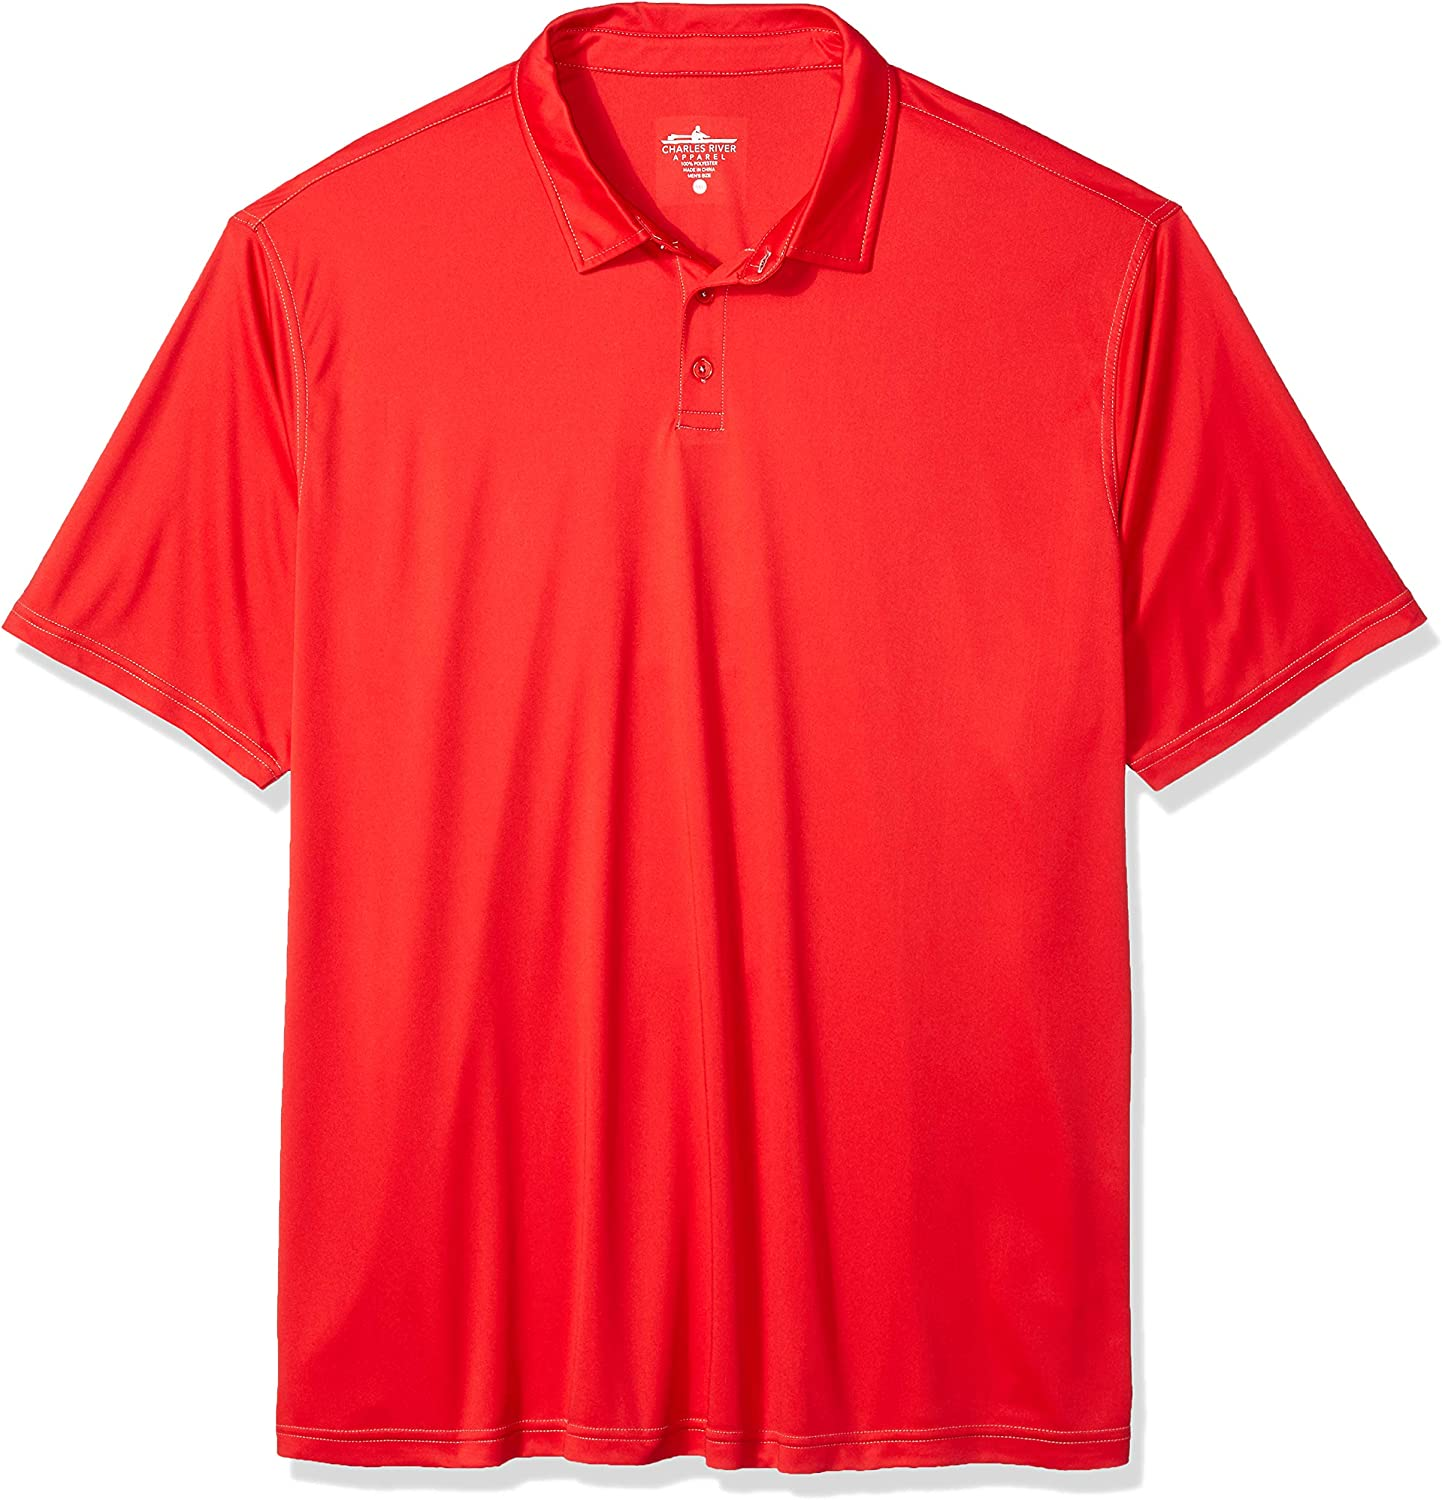 Charles River Apparel Men's Wellesley Polo Shirt, red, 5XL